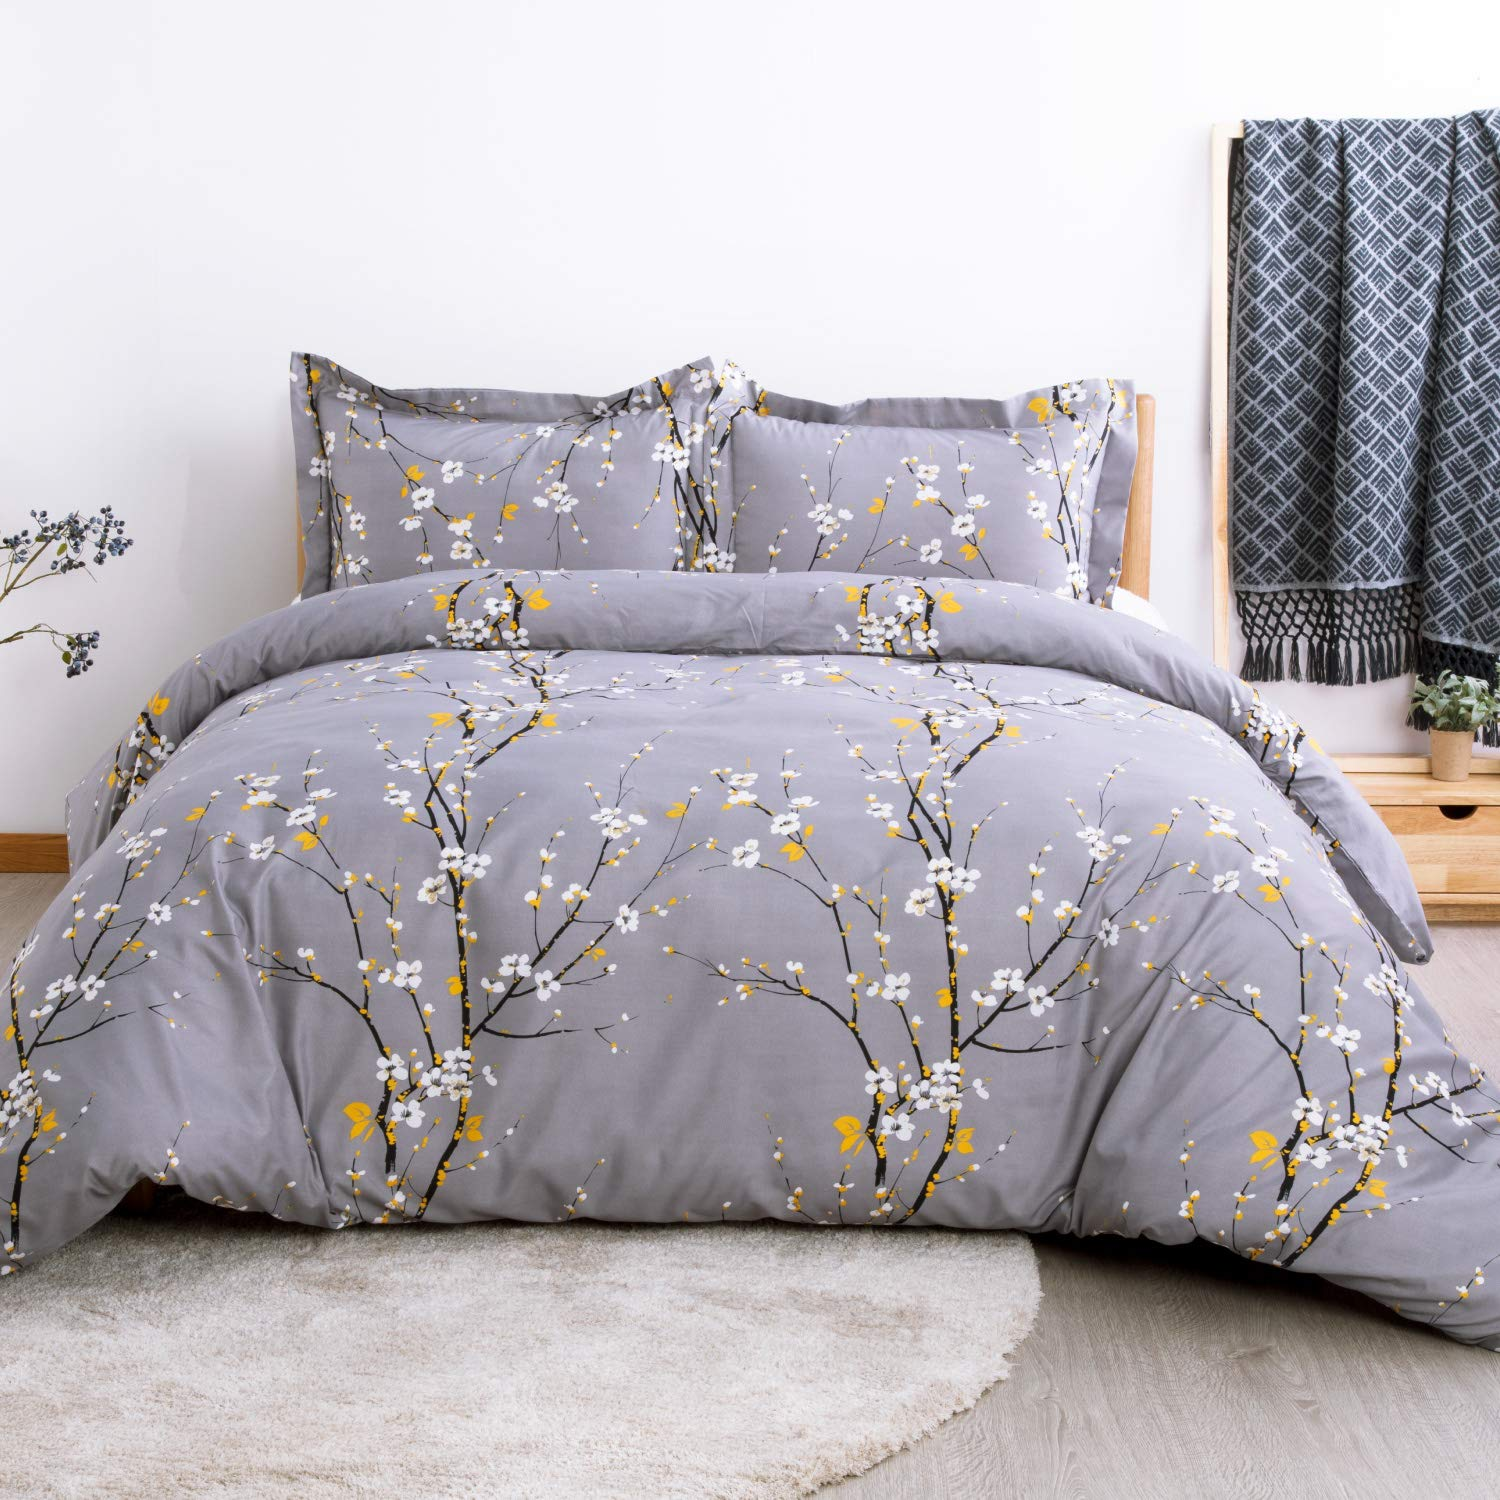 Bedsure Spring Bloom Pattern Bedding Set Full/Queen (90x90 inches) Duvet Cover Set Dark Grey Printed Modern Comforter Cover-3 Pieces-Ultra Soft Hypoallergenic Microfiber by Bedsure